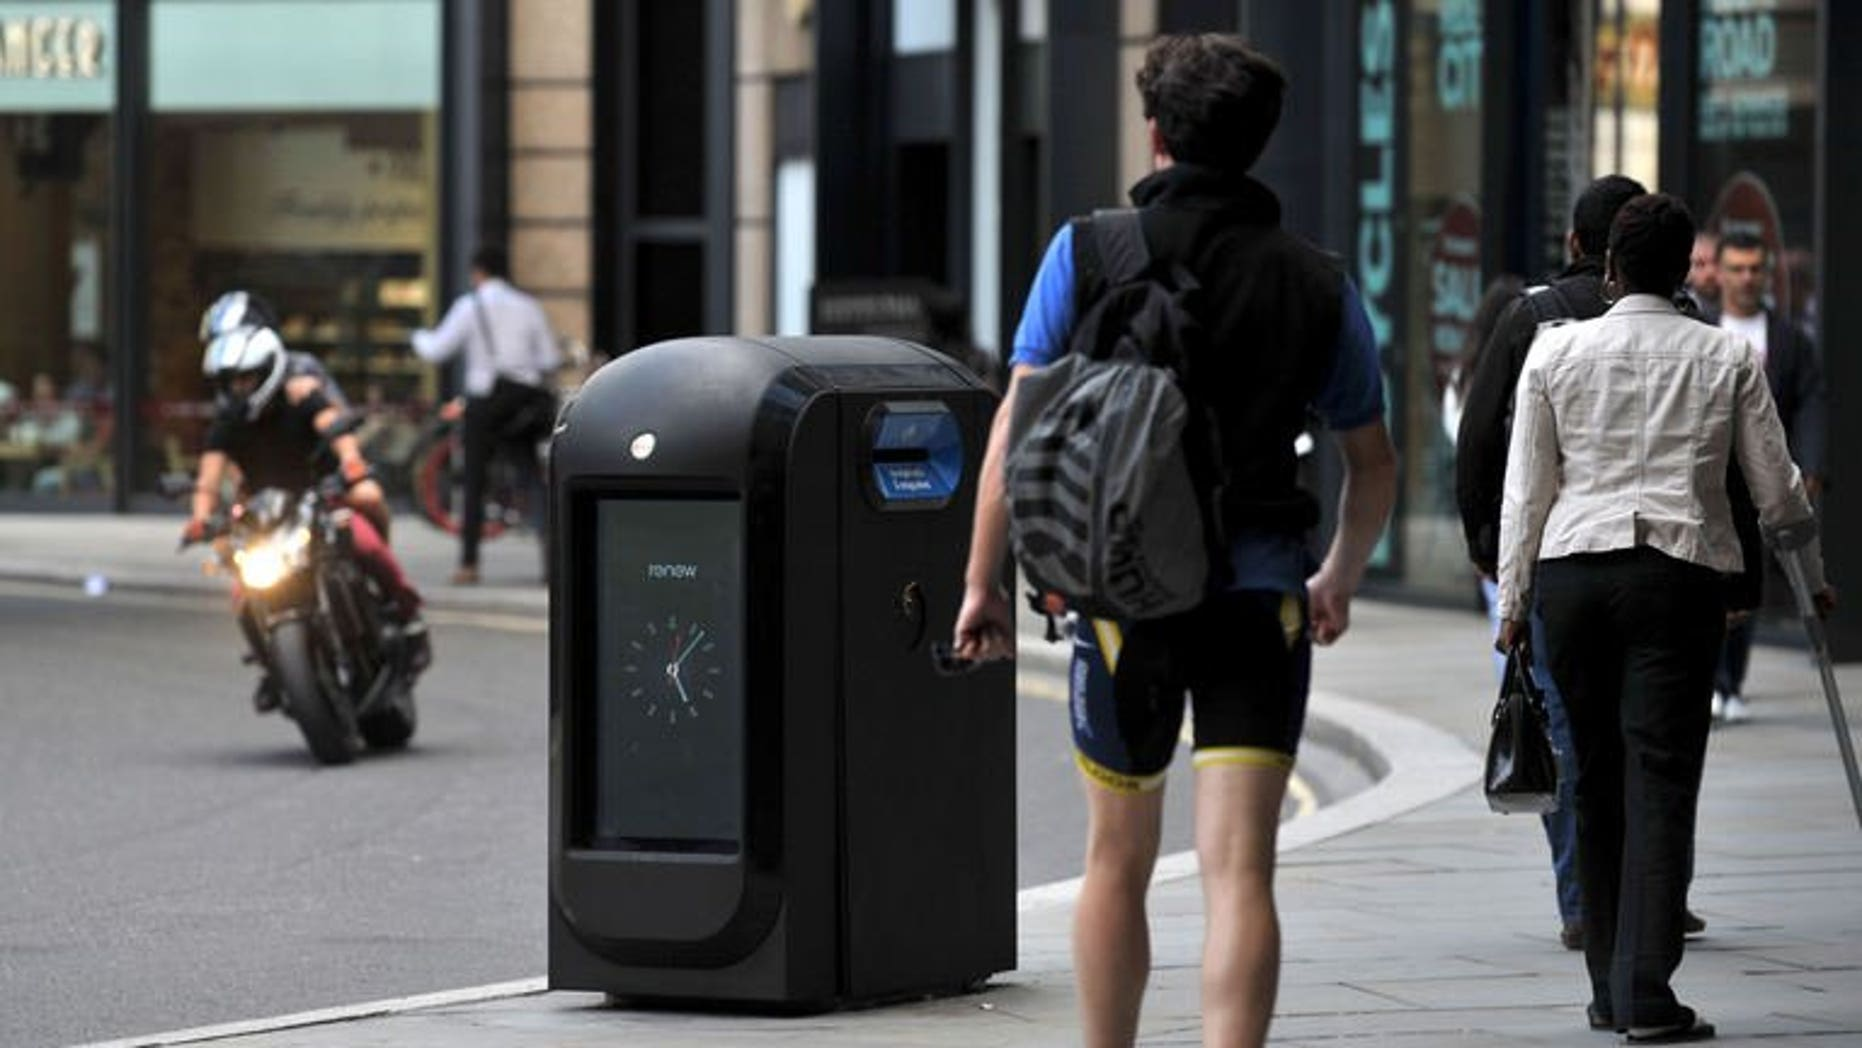 """People walk past a """"pod"""" high-tech trash bin in the City of London on August 12, 2013. Authorities in London's financial district ordered Renew, a company using high-tech trash cans to collect smartphone data from passers-by, to cease its activities, and referred the firm to the privacy watchdog."""